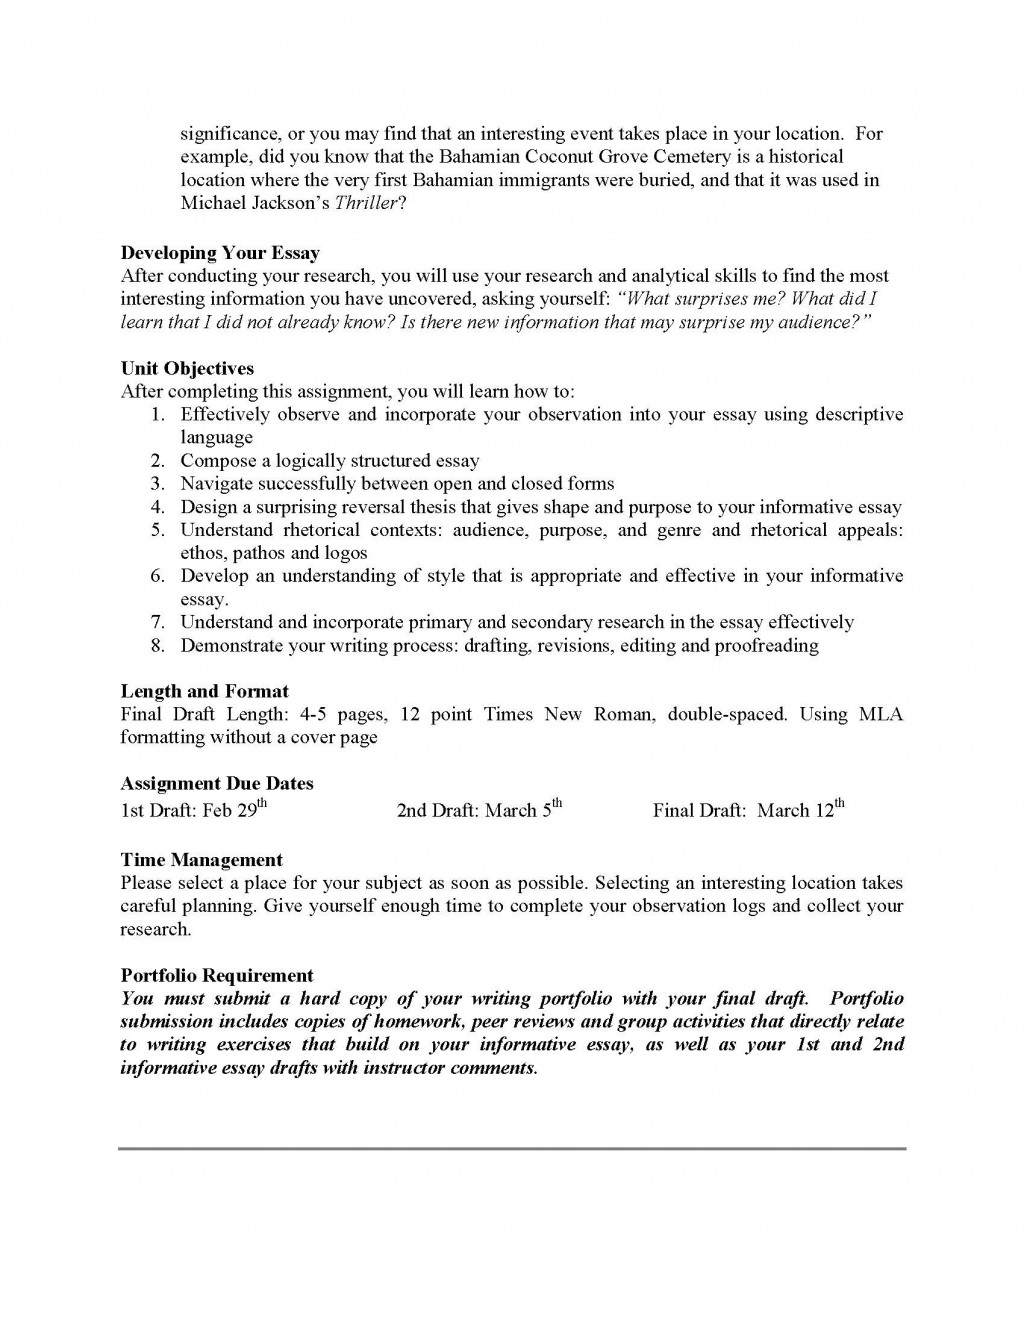 010 Informative Essay Ideas Unit Assignment Page 2 Wondrous Prompts Writing Topics 4th Grade Expository Middle School Large